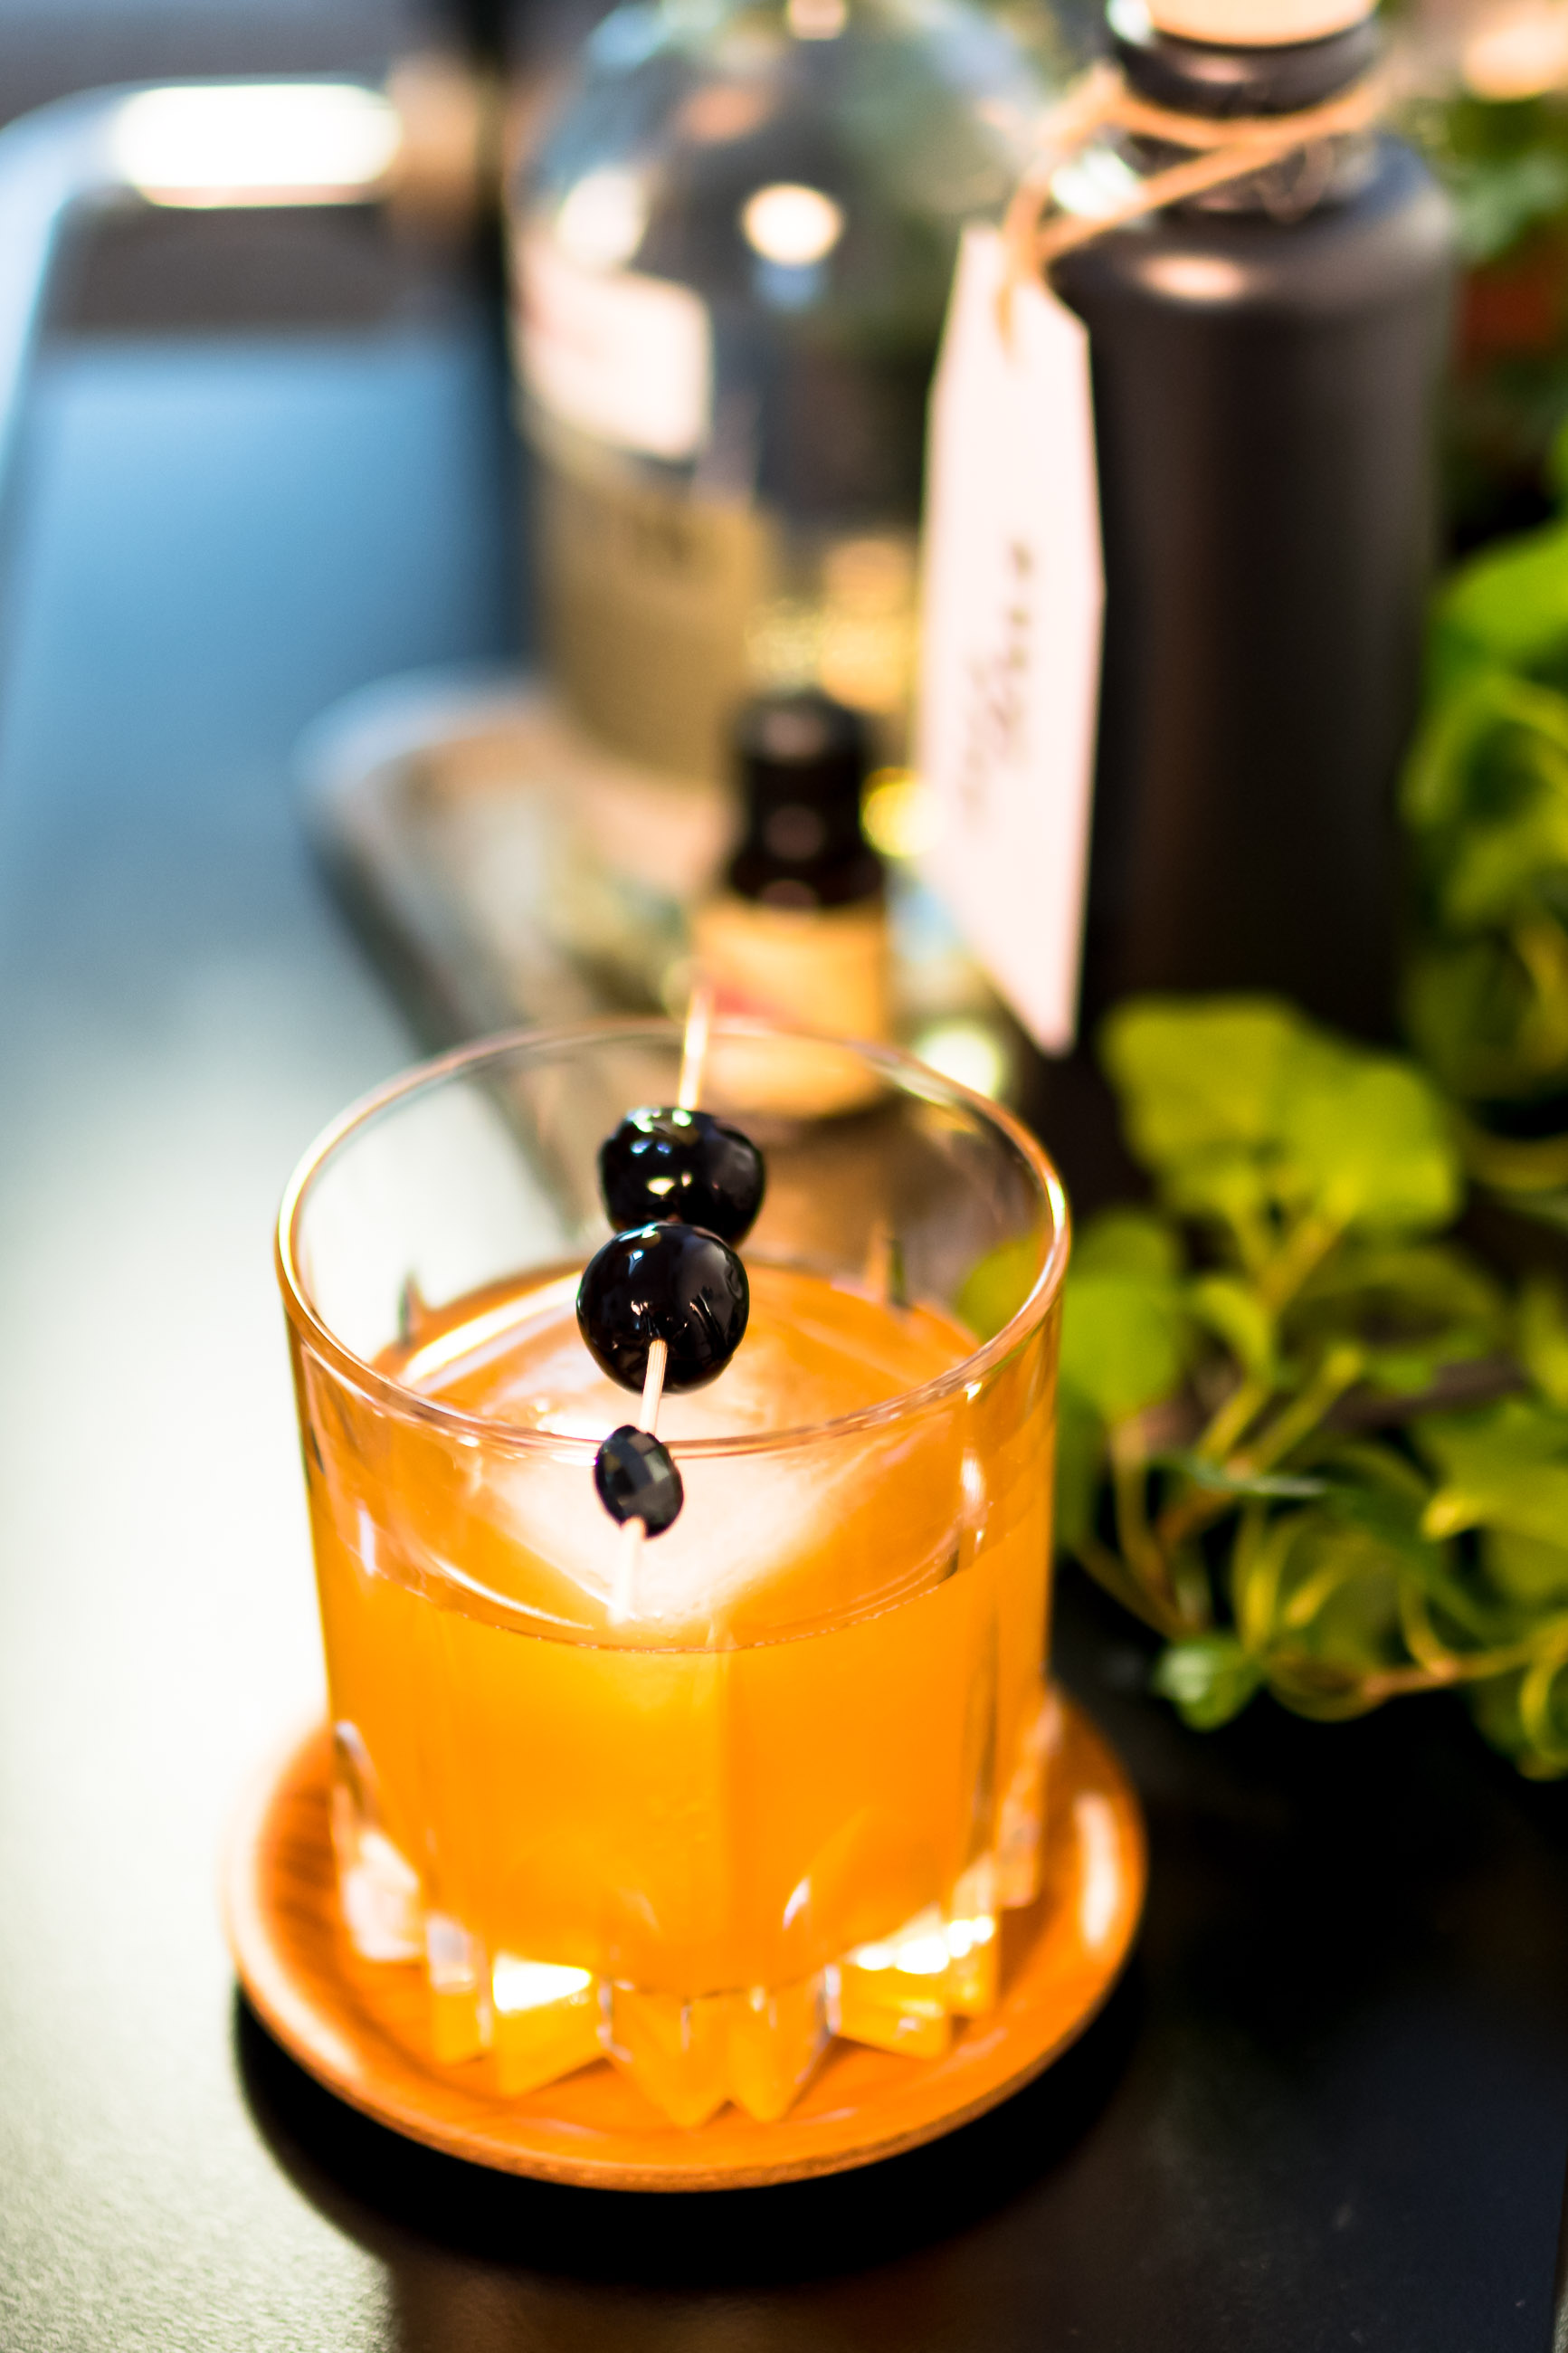 grapfruit old fashioned 5 400x284 Grapefruit Old Fashioned